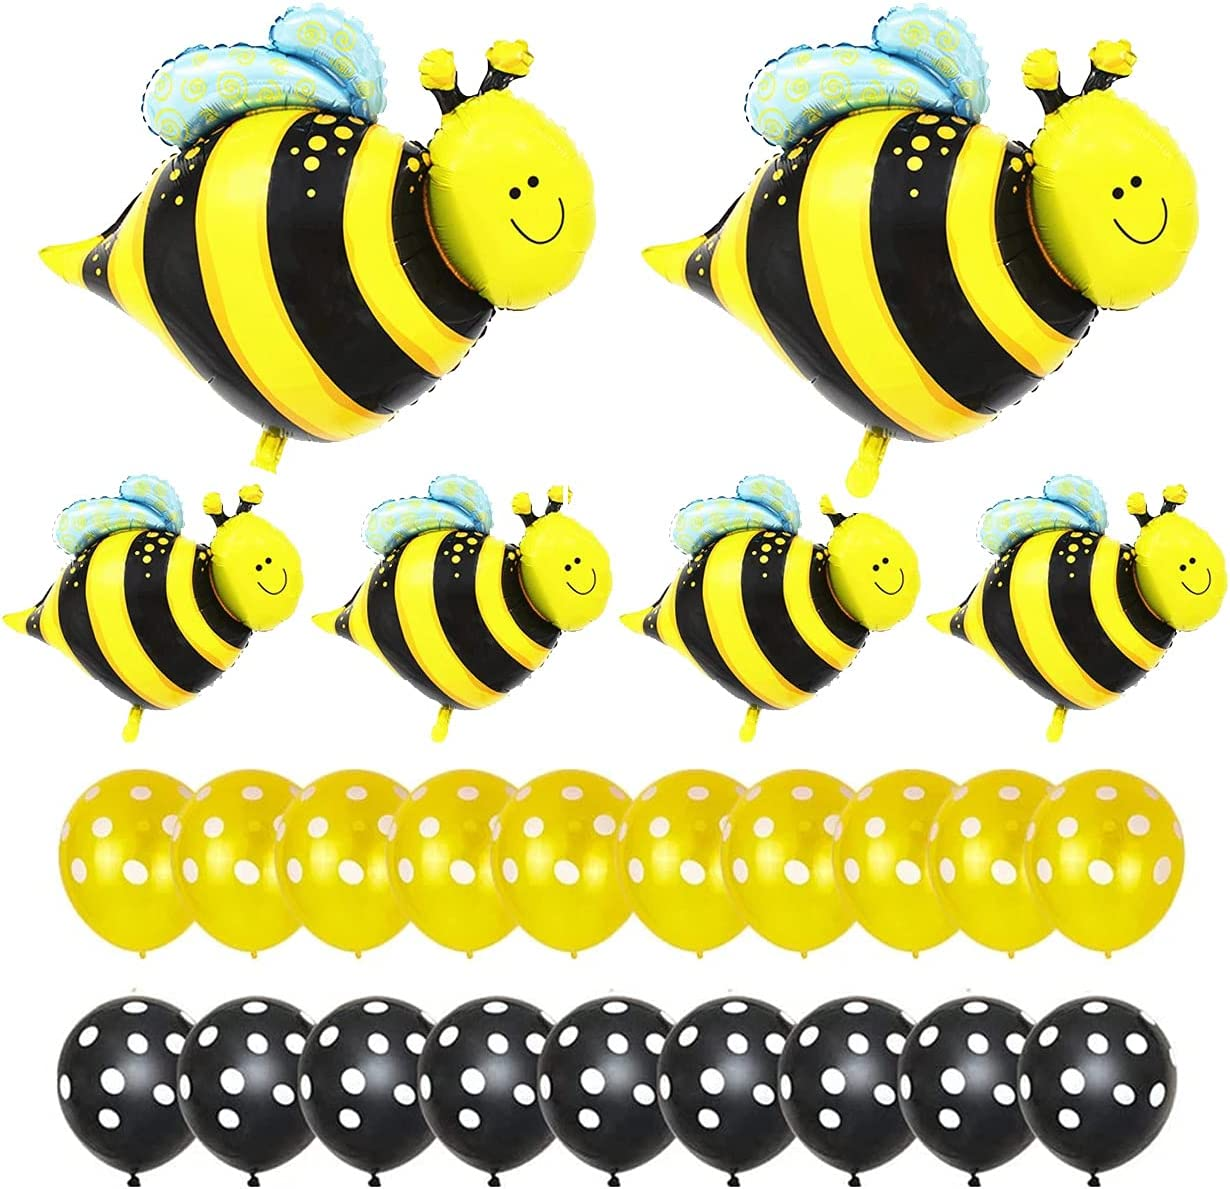 Bee Foil Balloons Black Yellow Latex Balloons Set for Baby Shower Birthday Bumblebee Party Decor Supplies